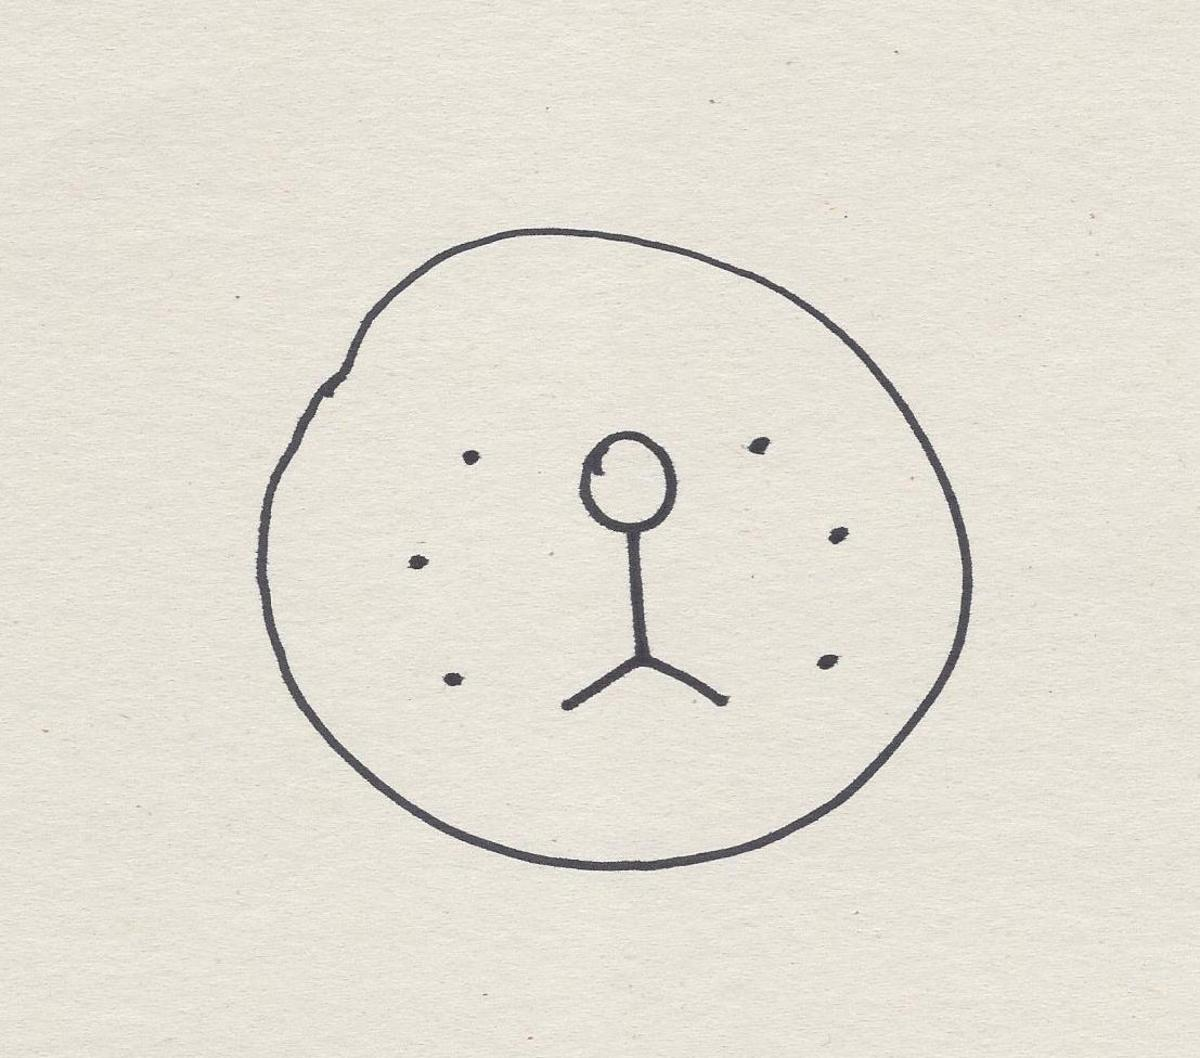 Draw 3 dots or so on each side of the stick figure.